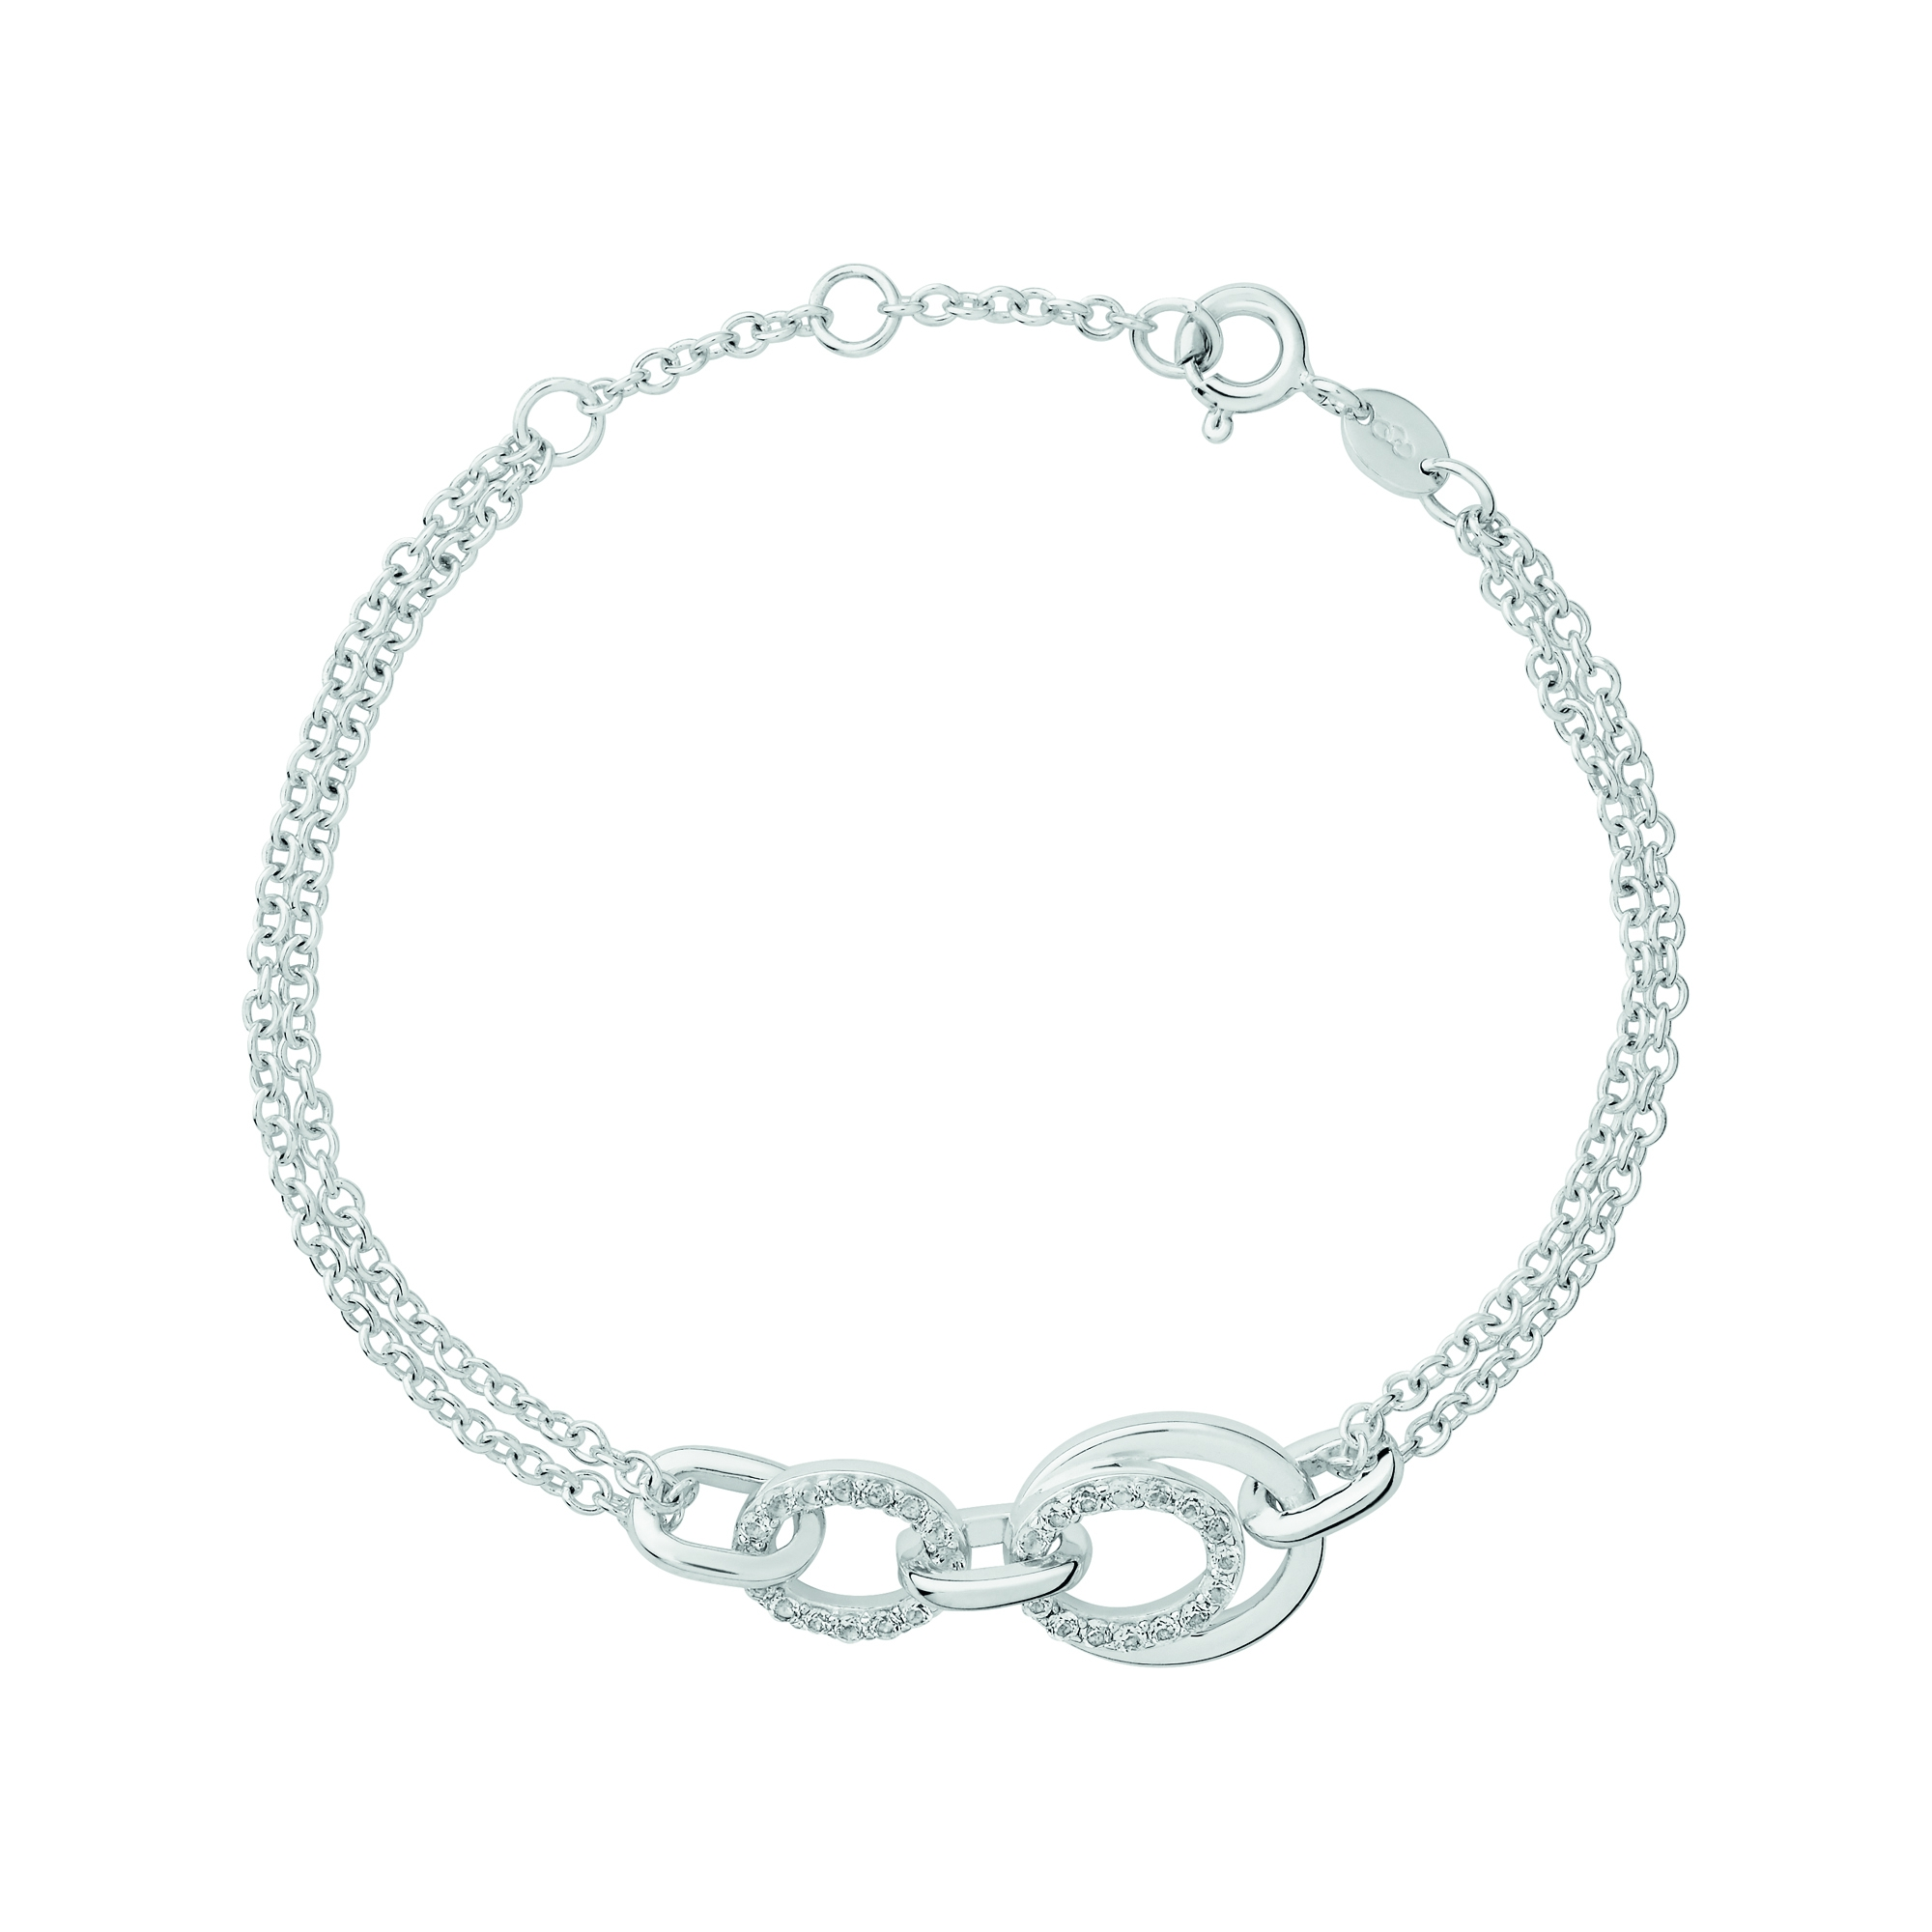 zolace linked com products free optimized chain in silver shipping bracelet